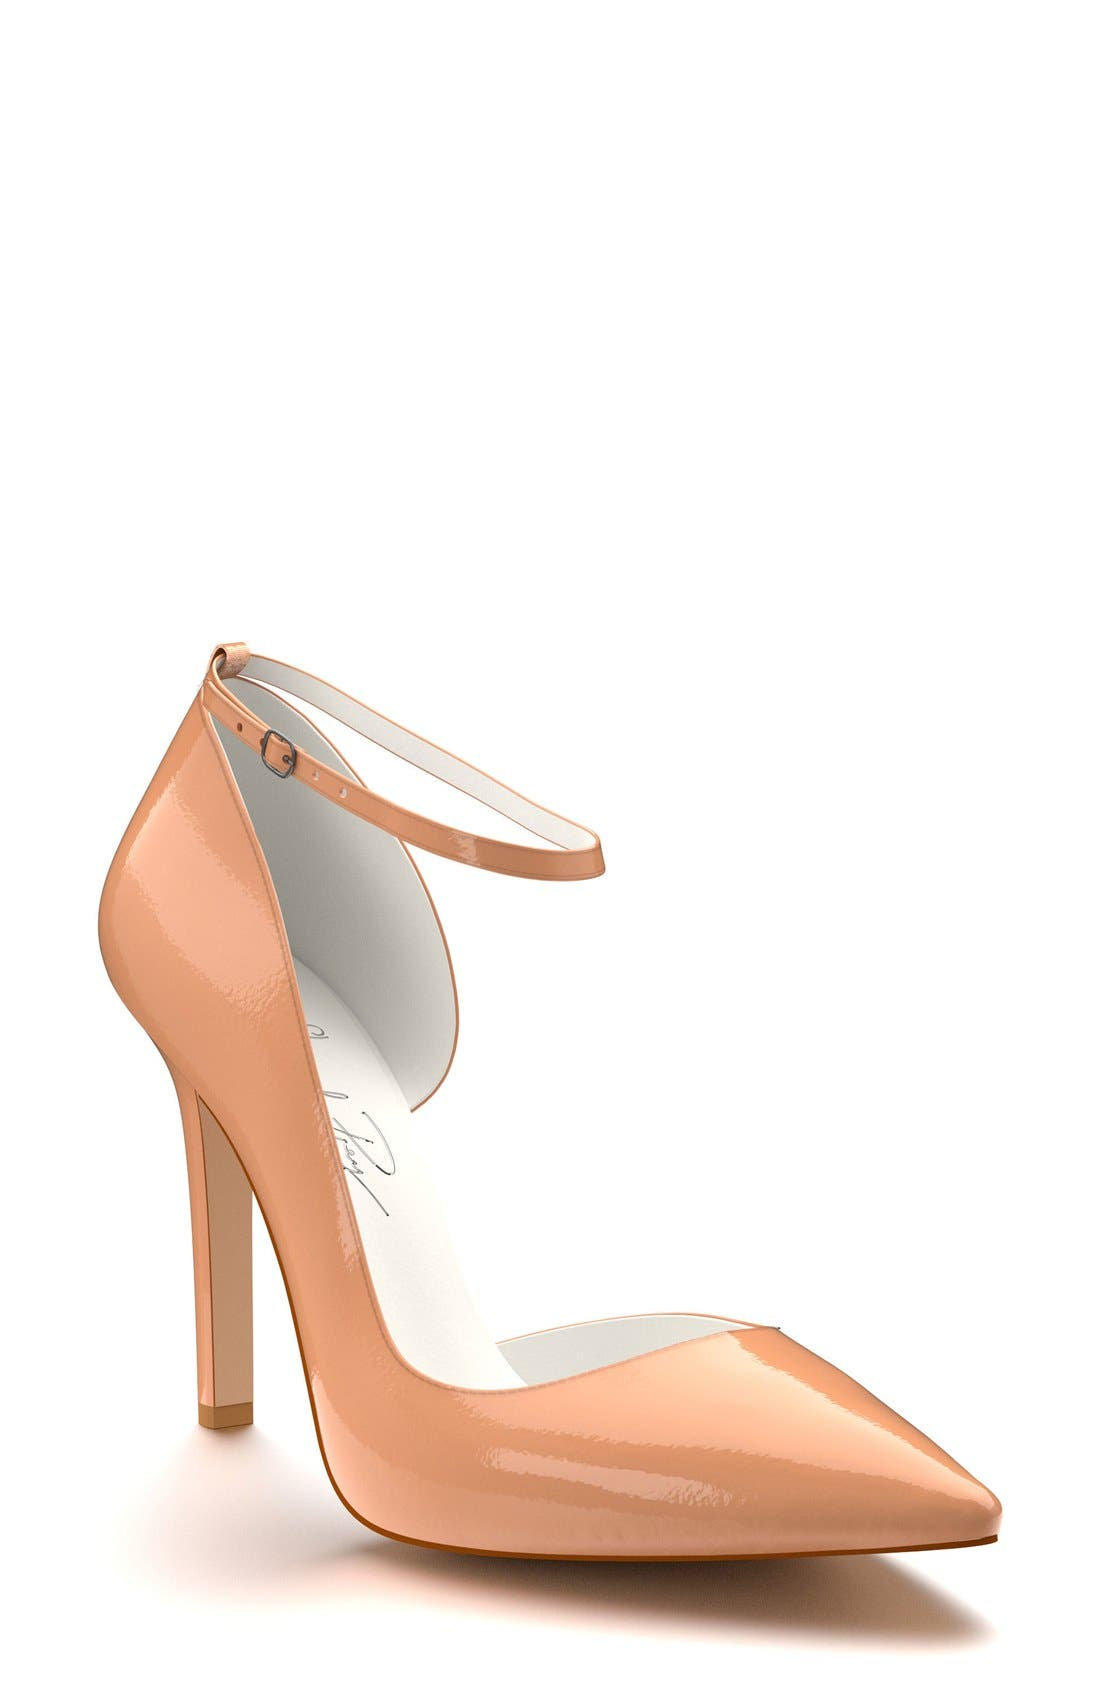 Alternate Image 1 Selected - Shoes of Prey Ankle Strap d'Orsay Pump (Women)